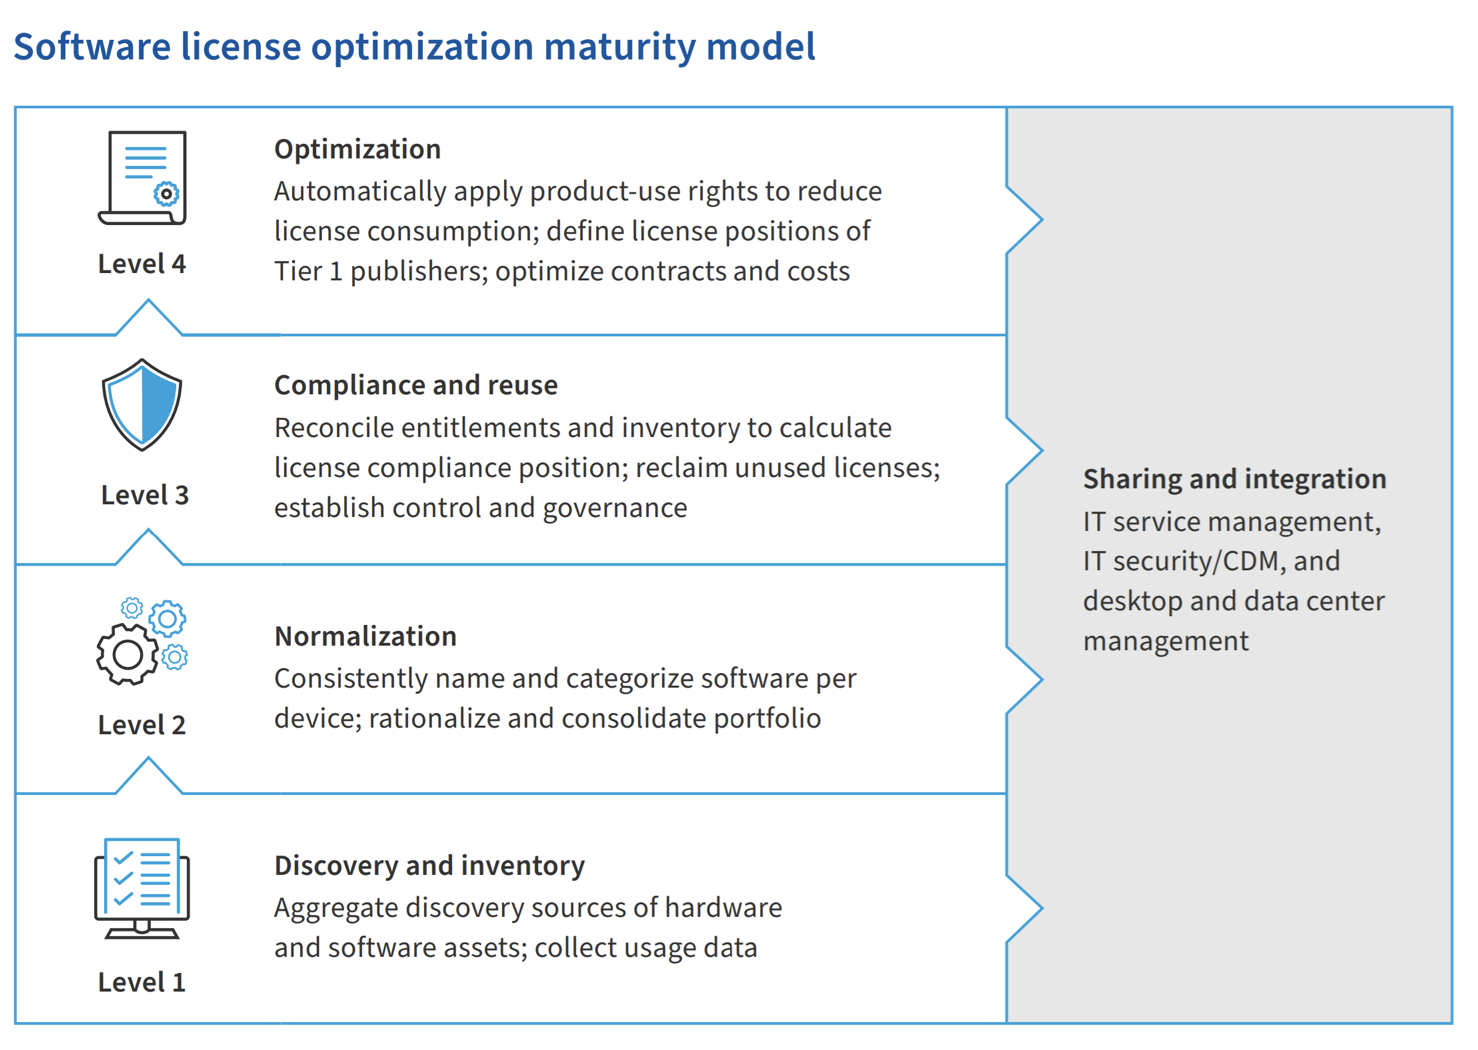 Software license optimization maturity model